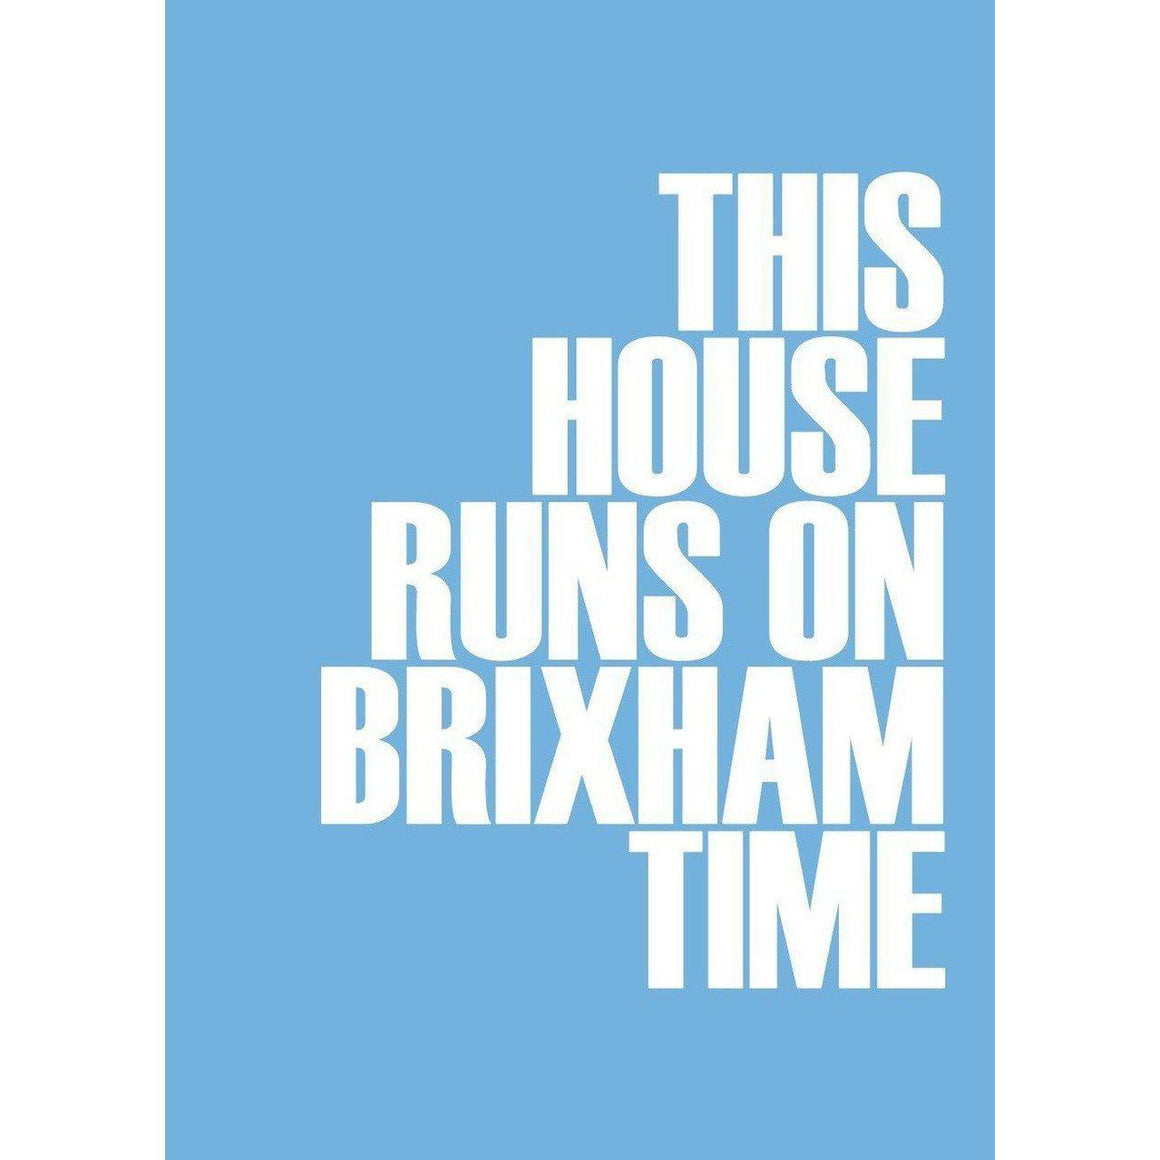 Brixham Typographic Travel Print/Poster Seaside Coastal Wall Art by SeaKisses